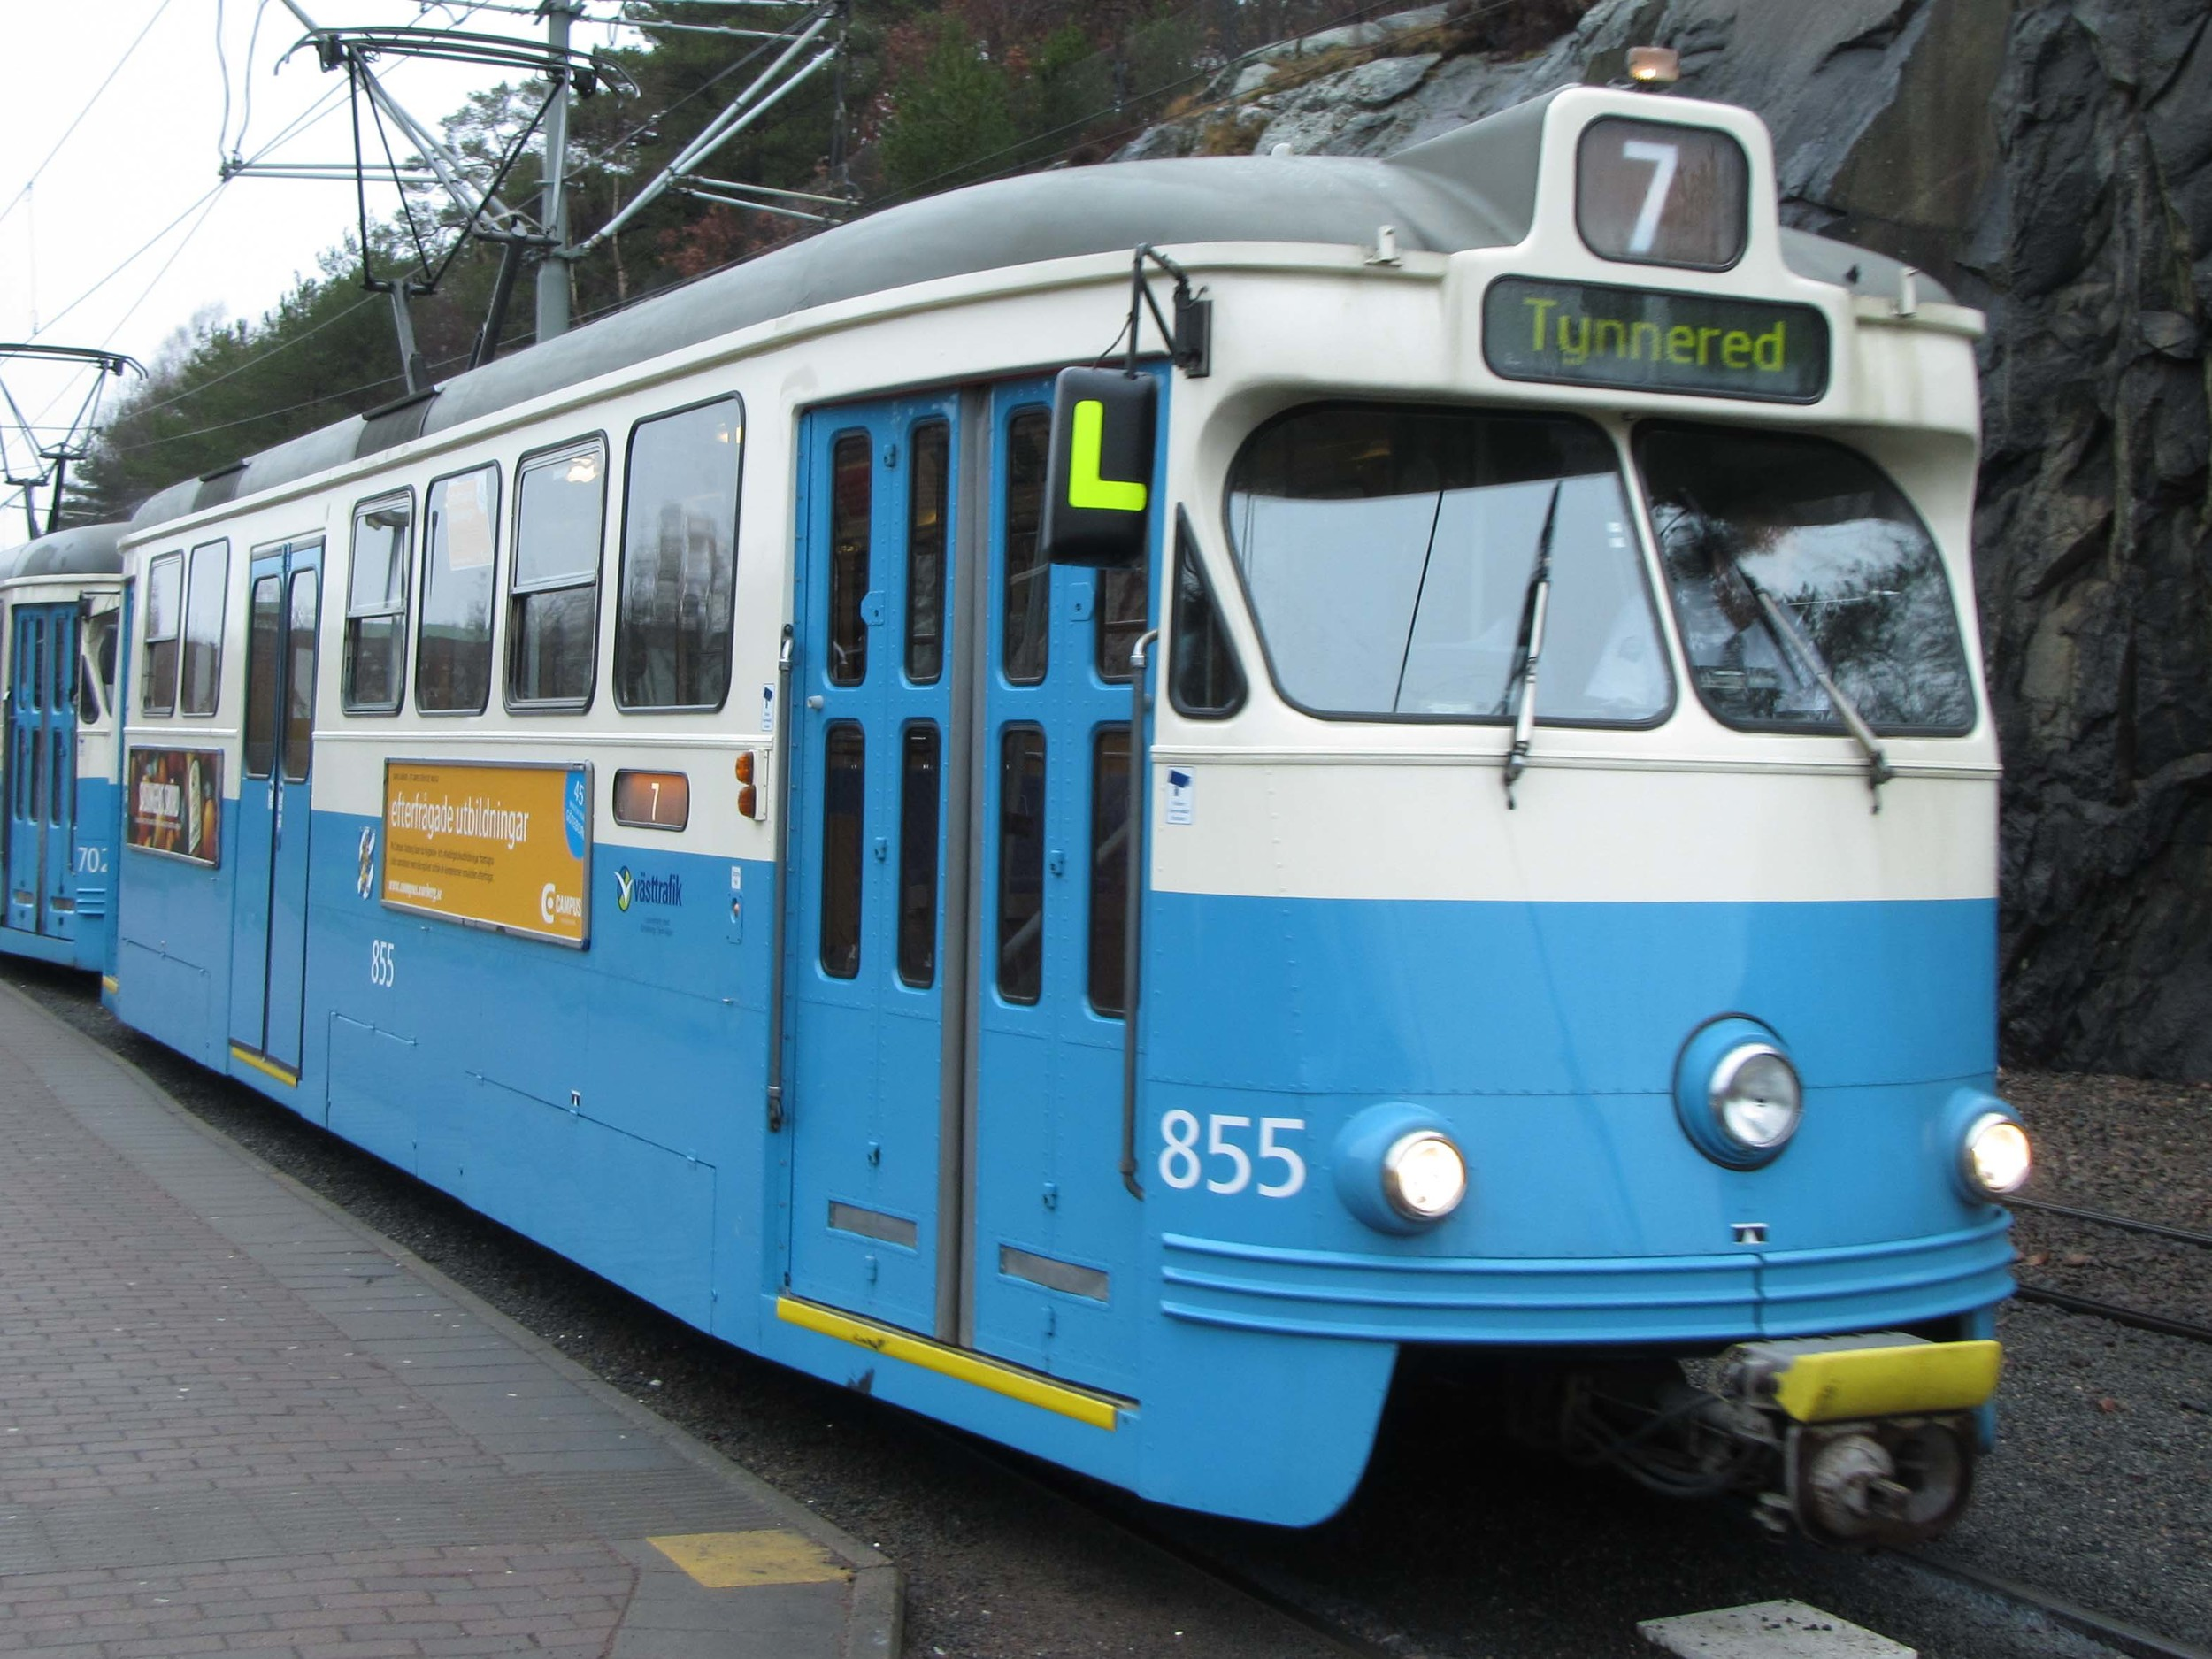 Vintage tram in Gothenburg. This is the one we took to get to the Poseidon tour